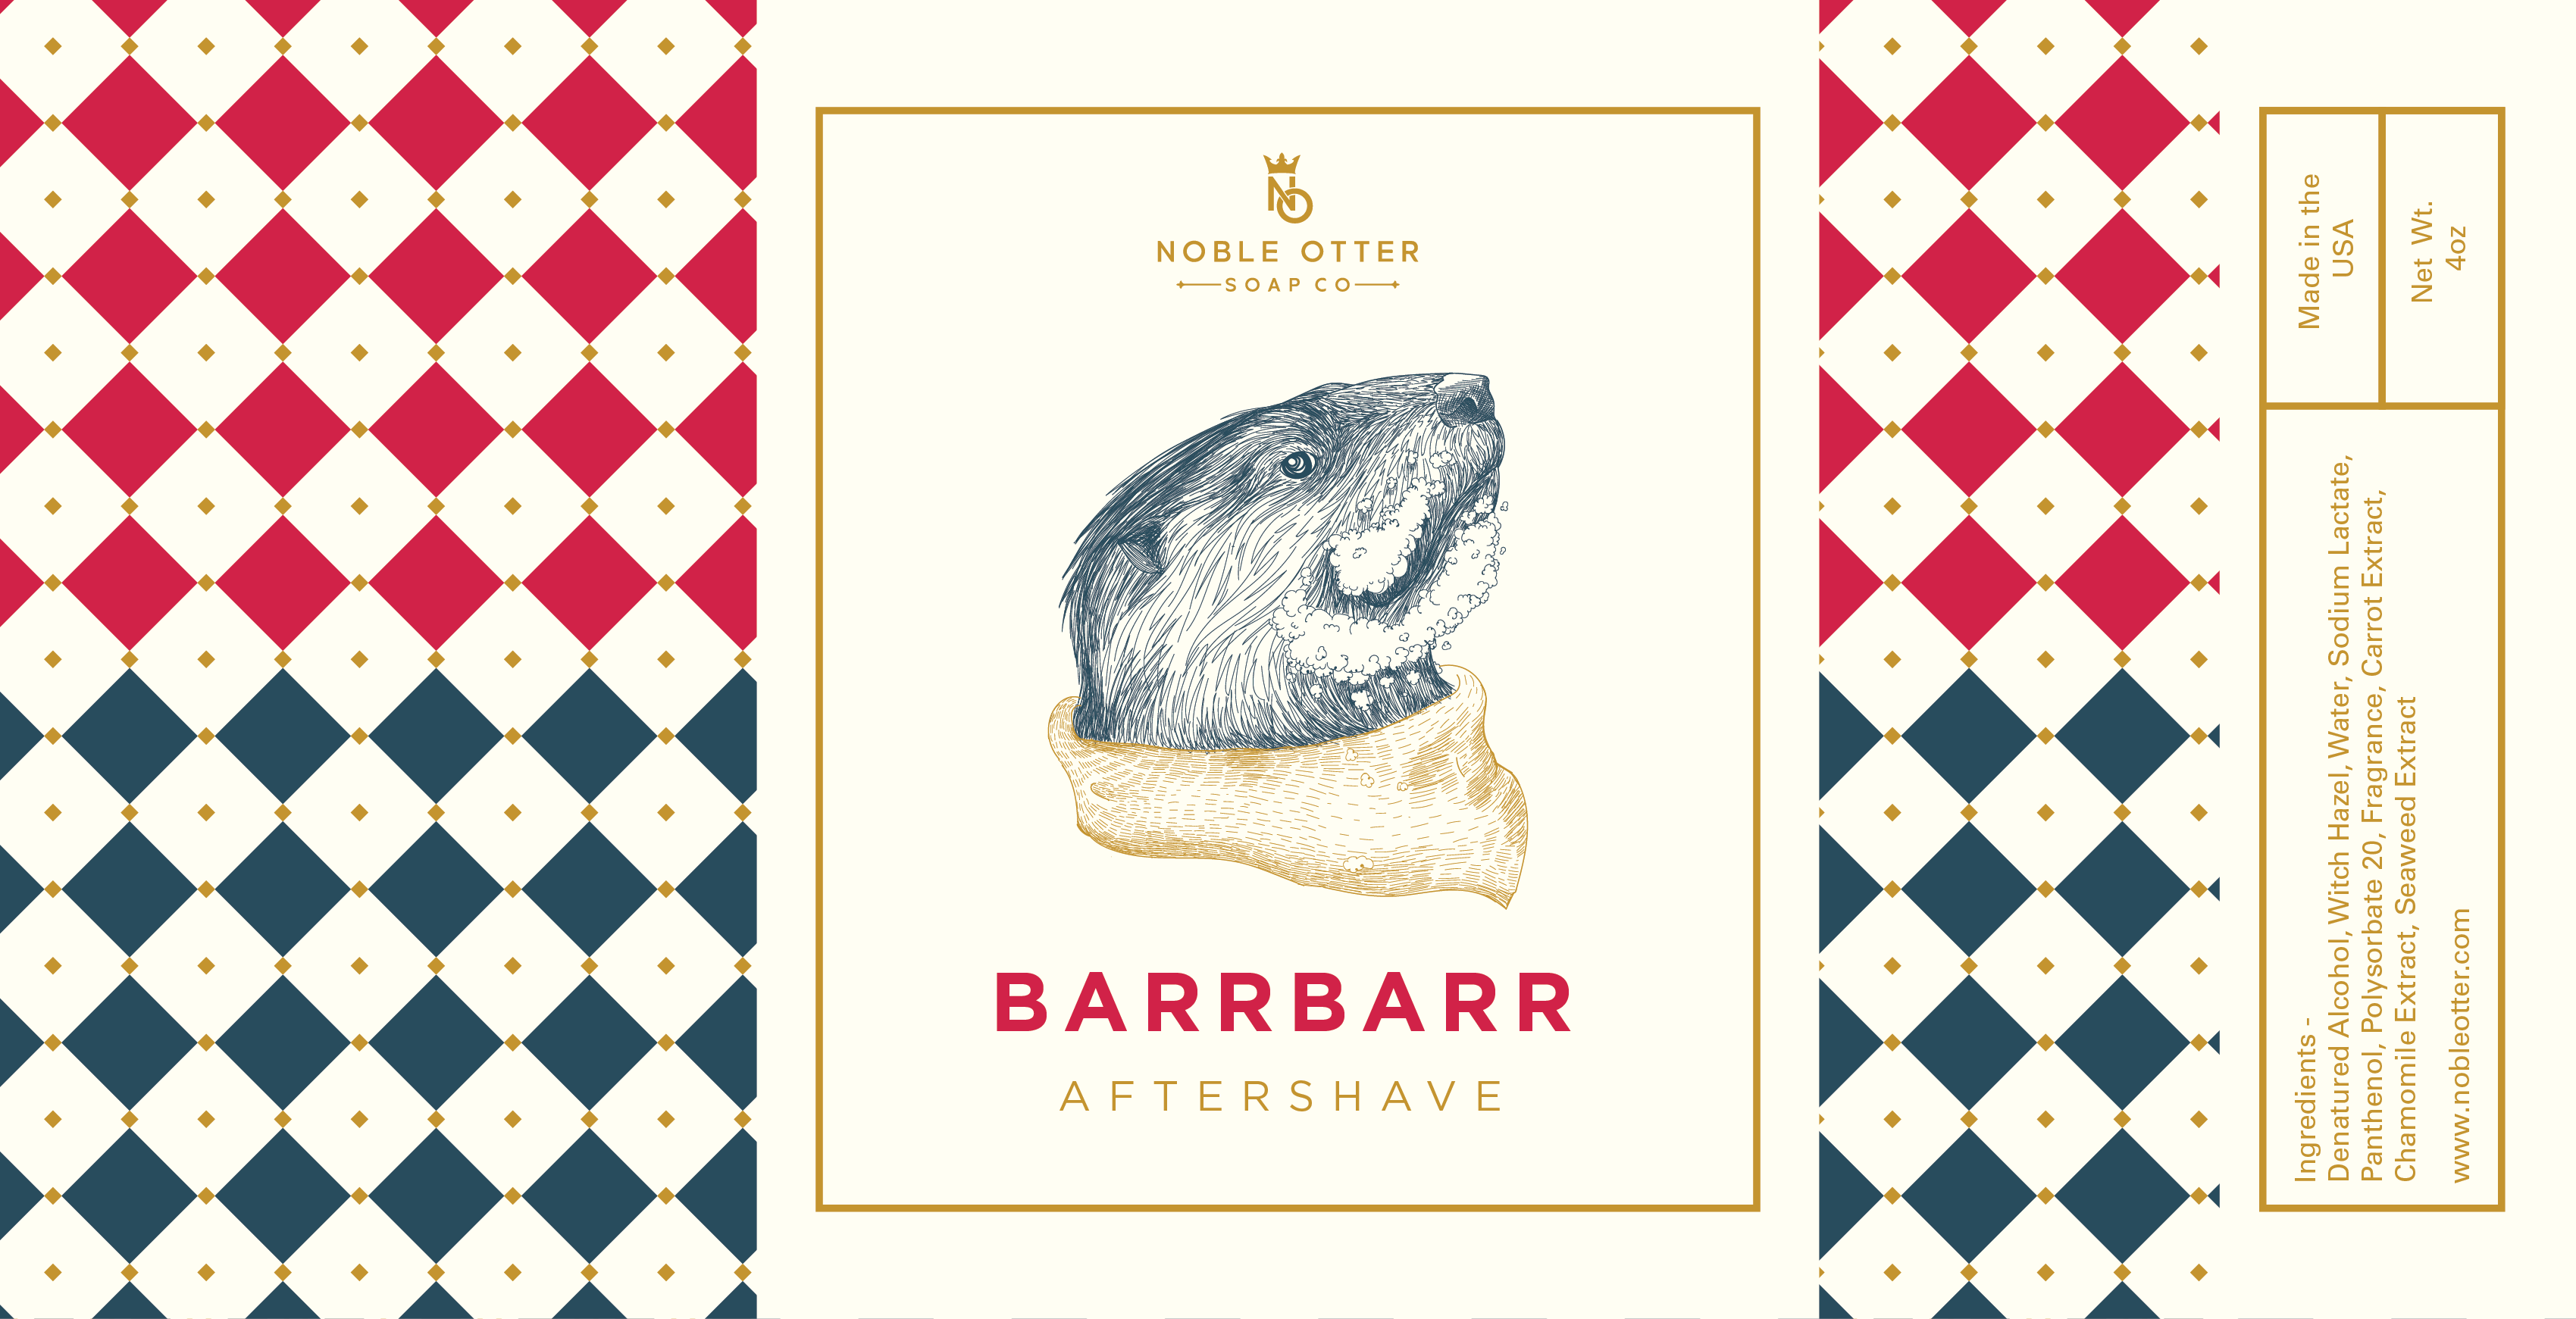 Noble Otter - Barrbarr - Aftershave image